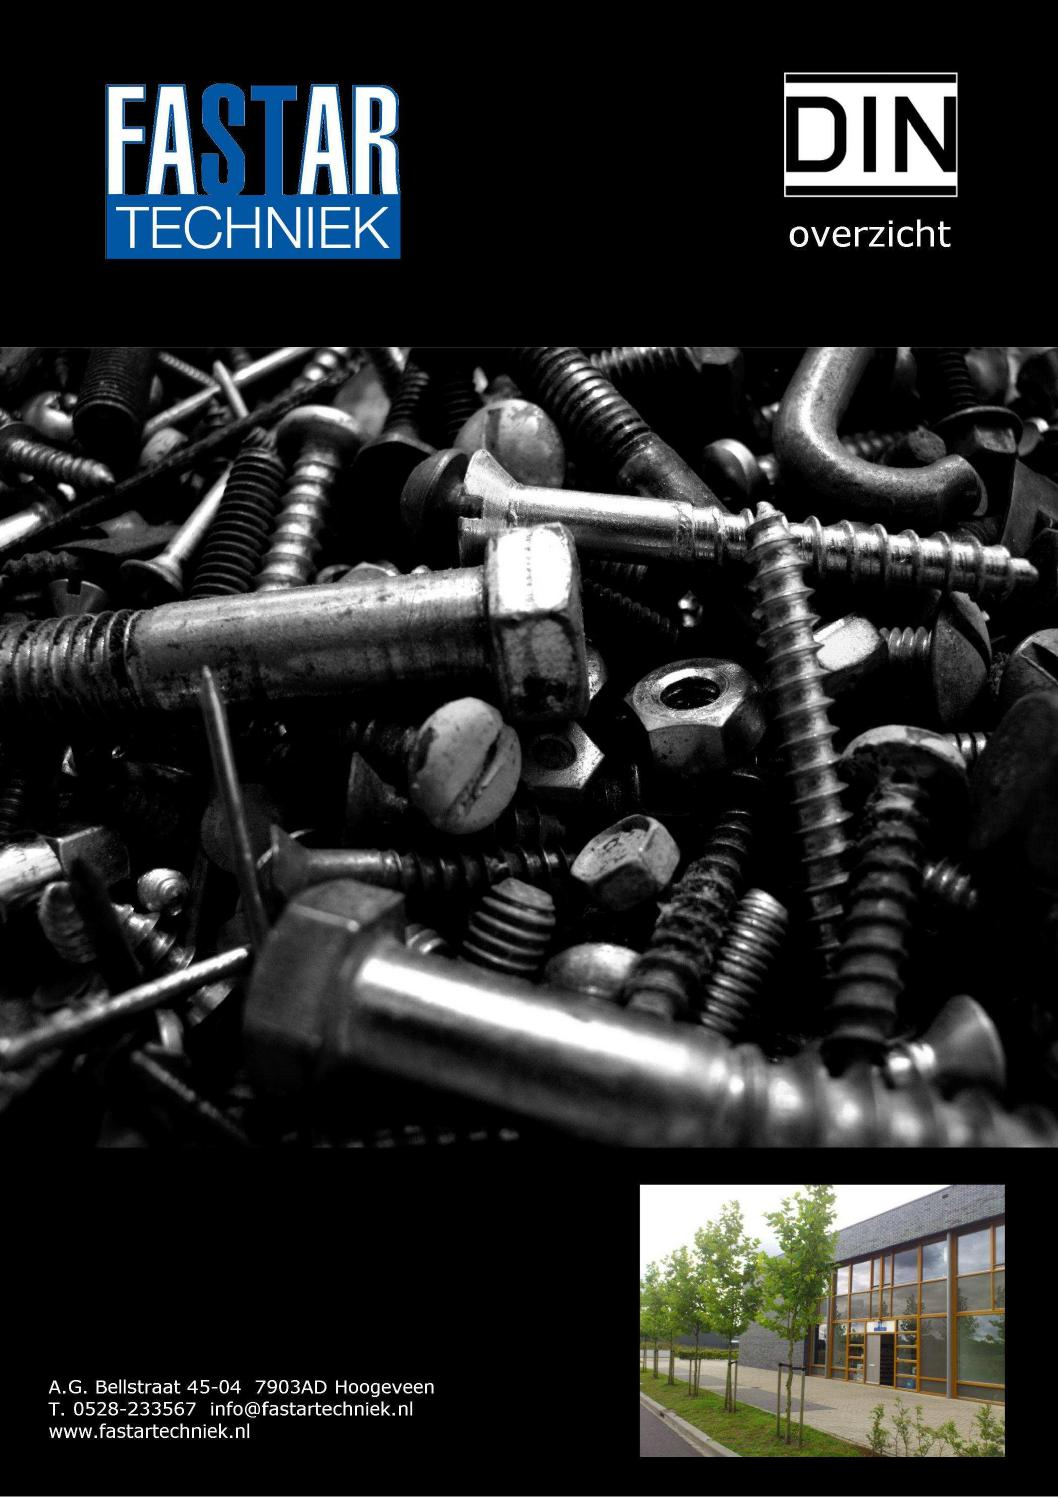 fastar techniek din catalogus by fastar - issuu